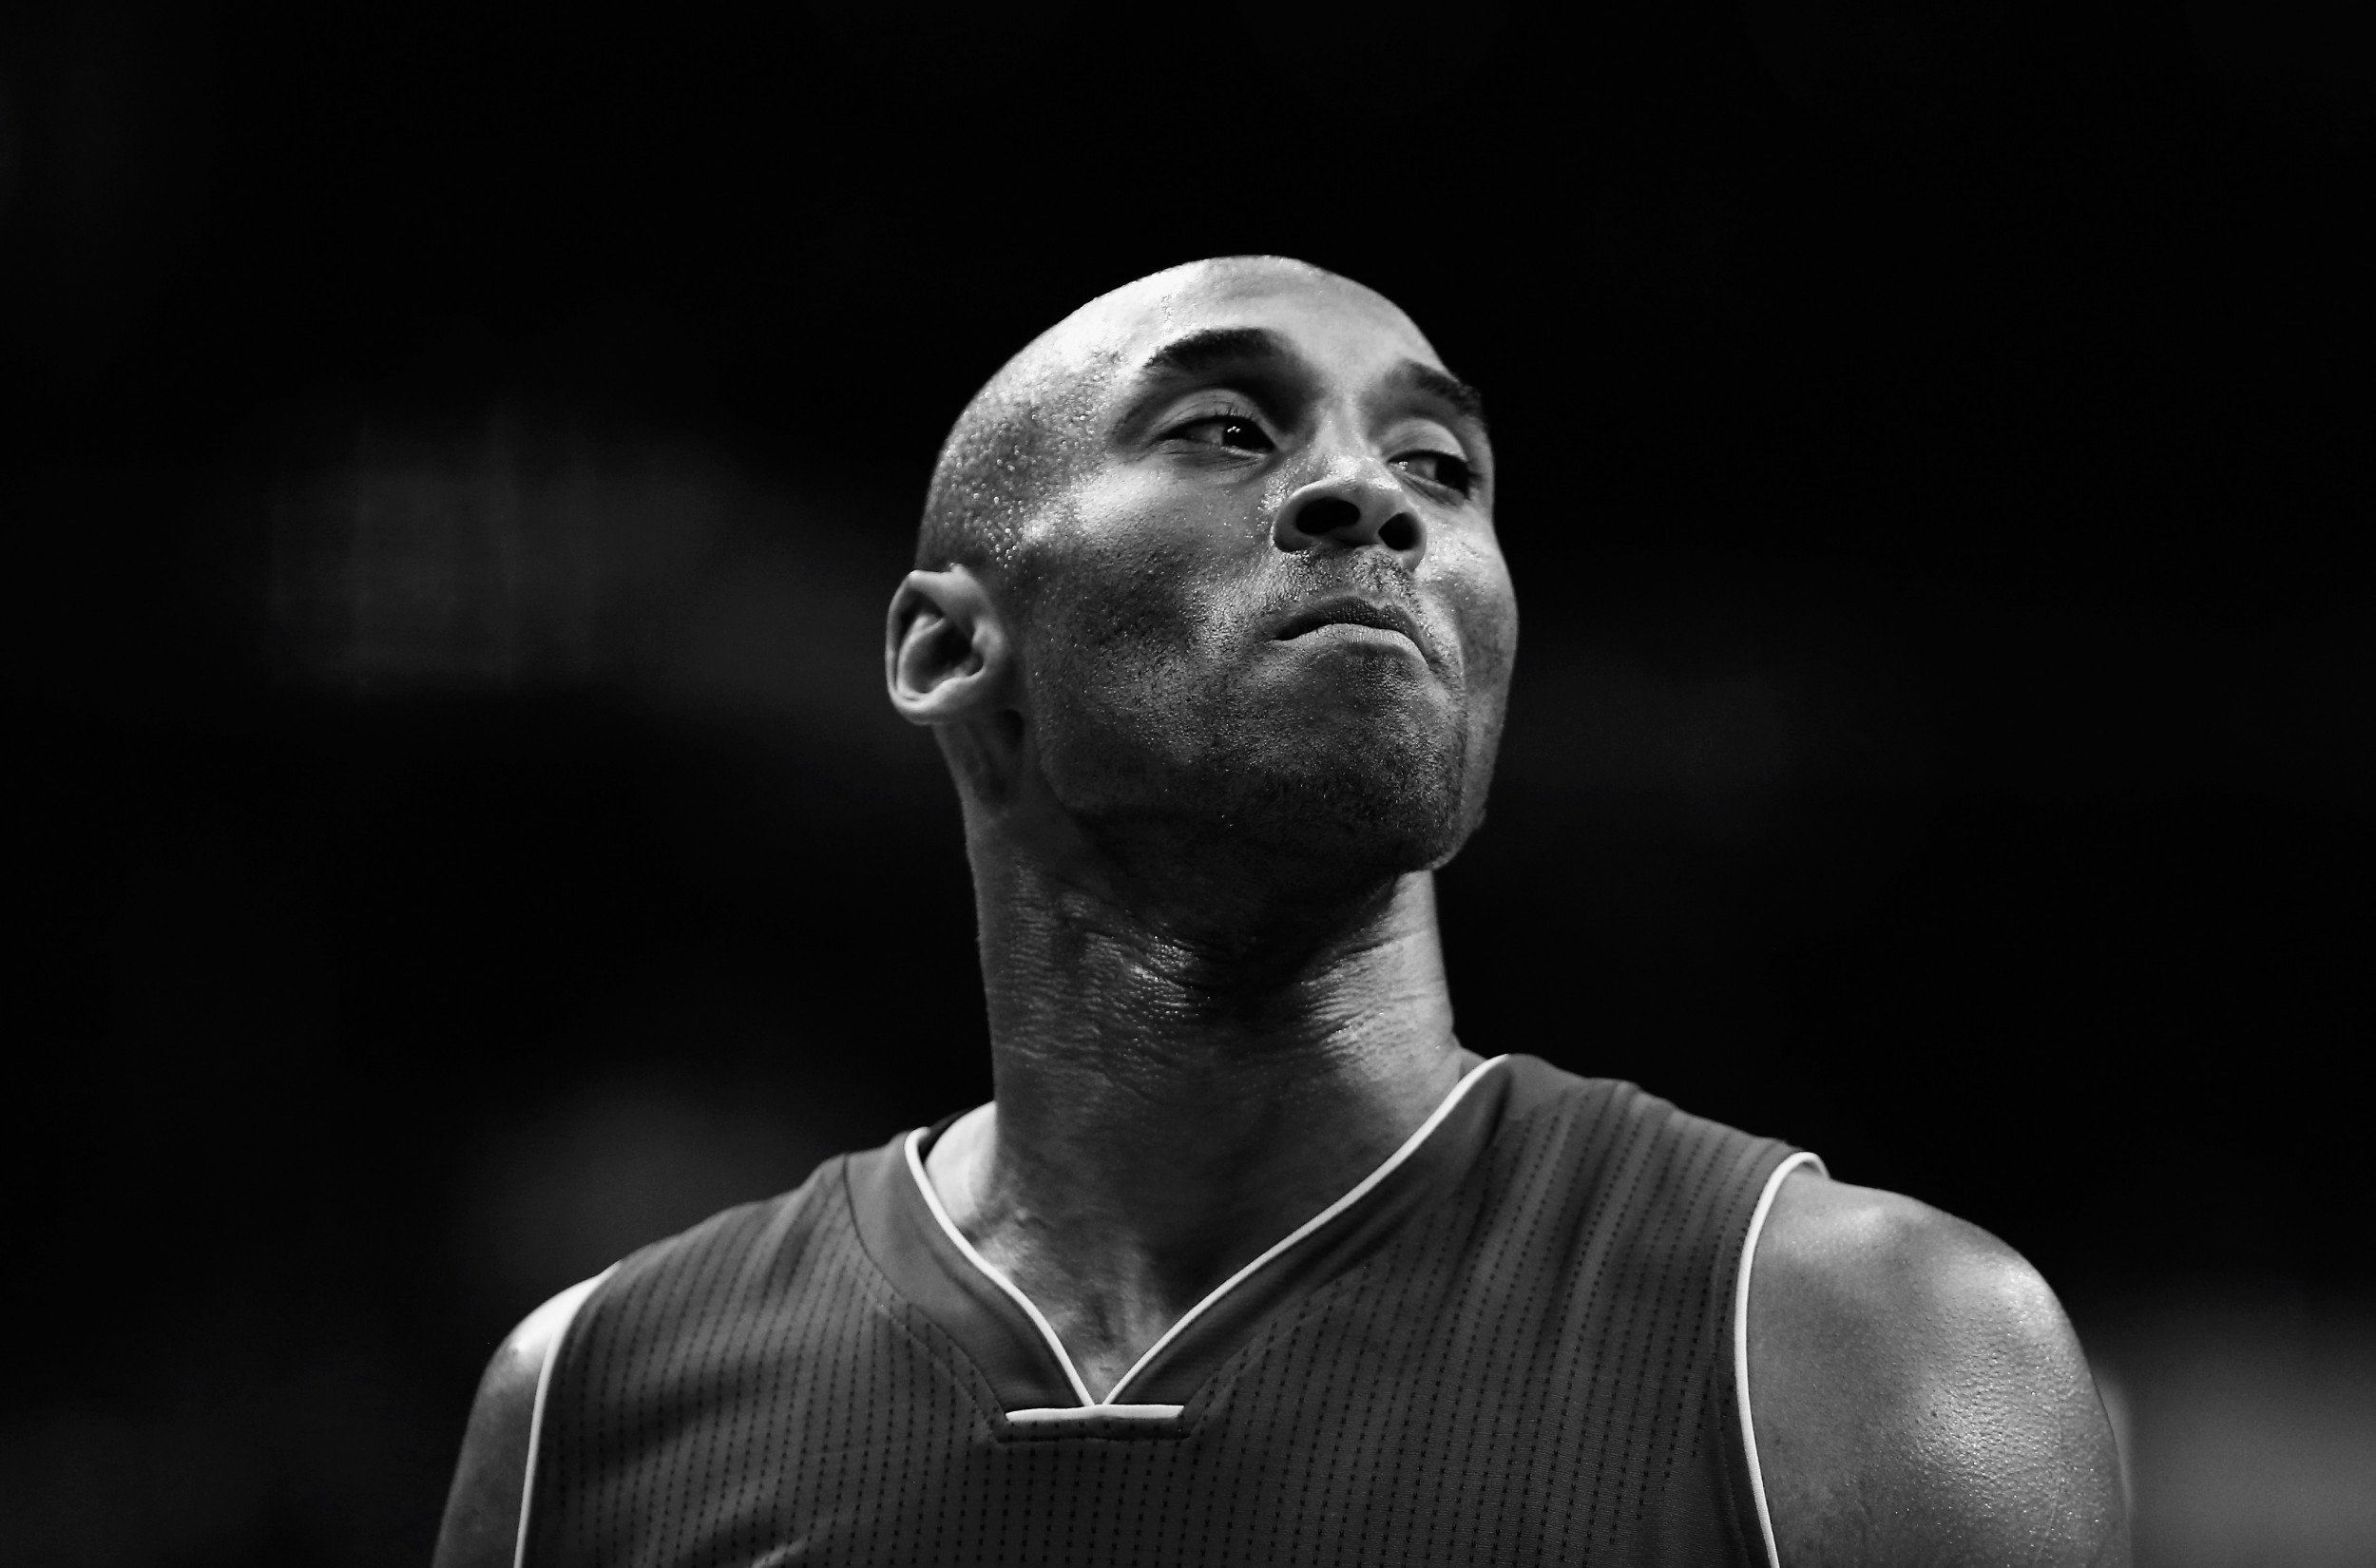 Nike Honors The Life Of Kobe Bryant With Emotional New Commercial